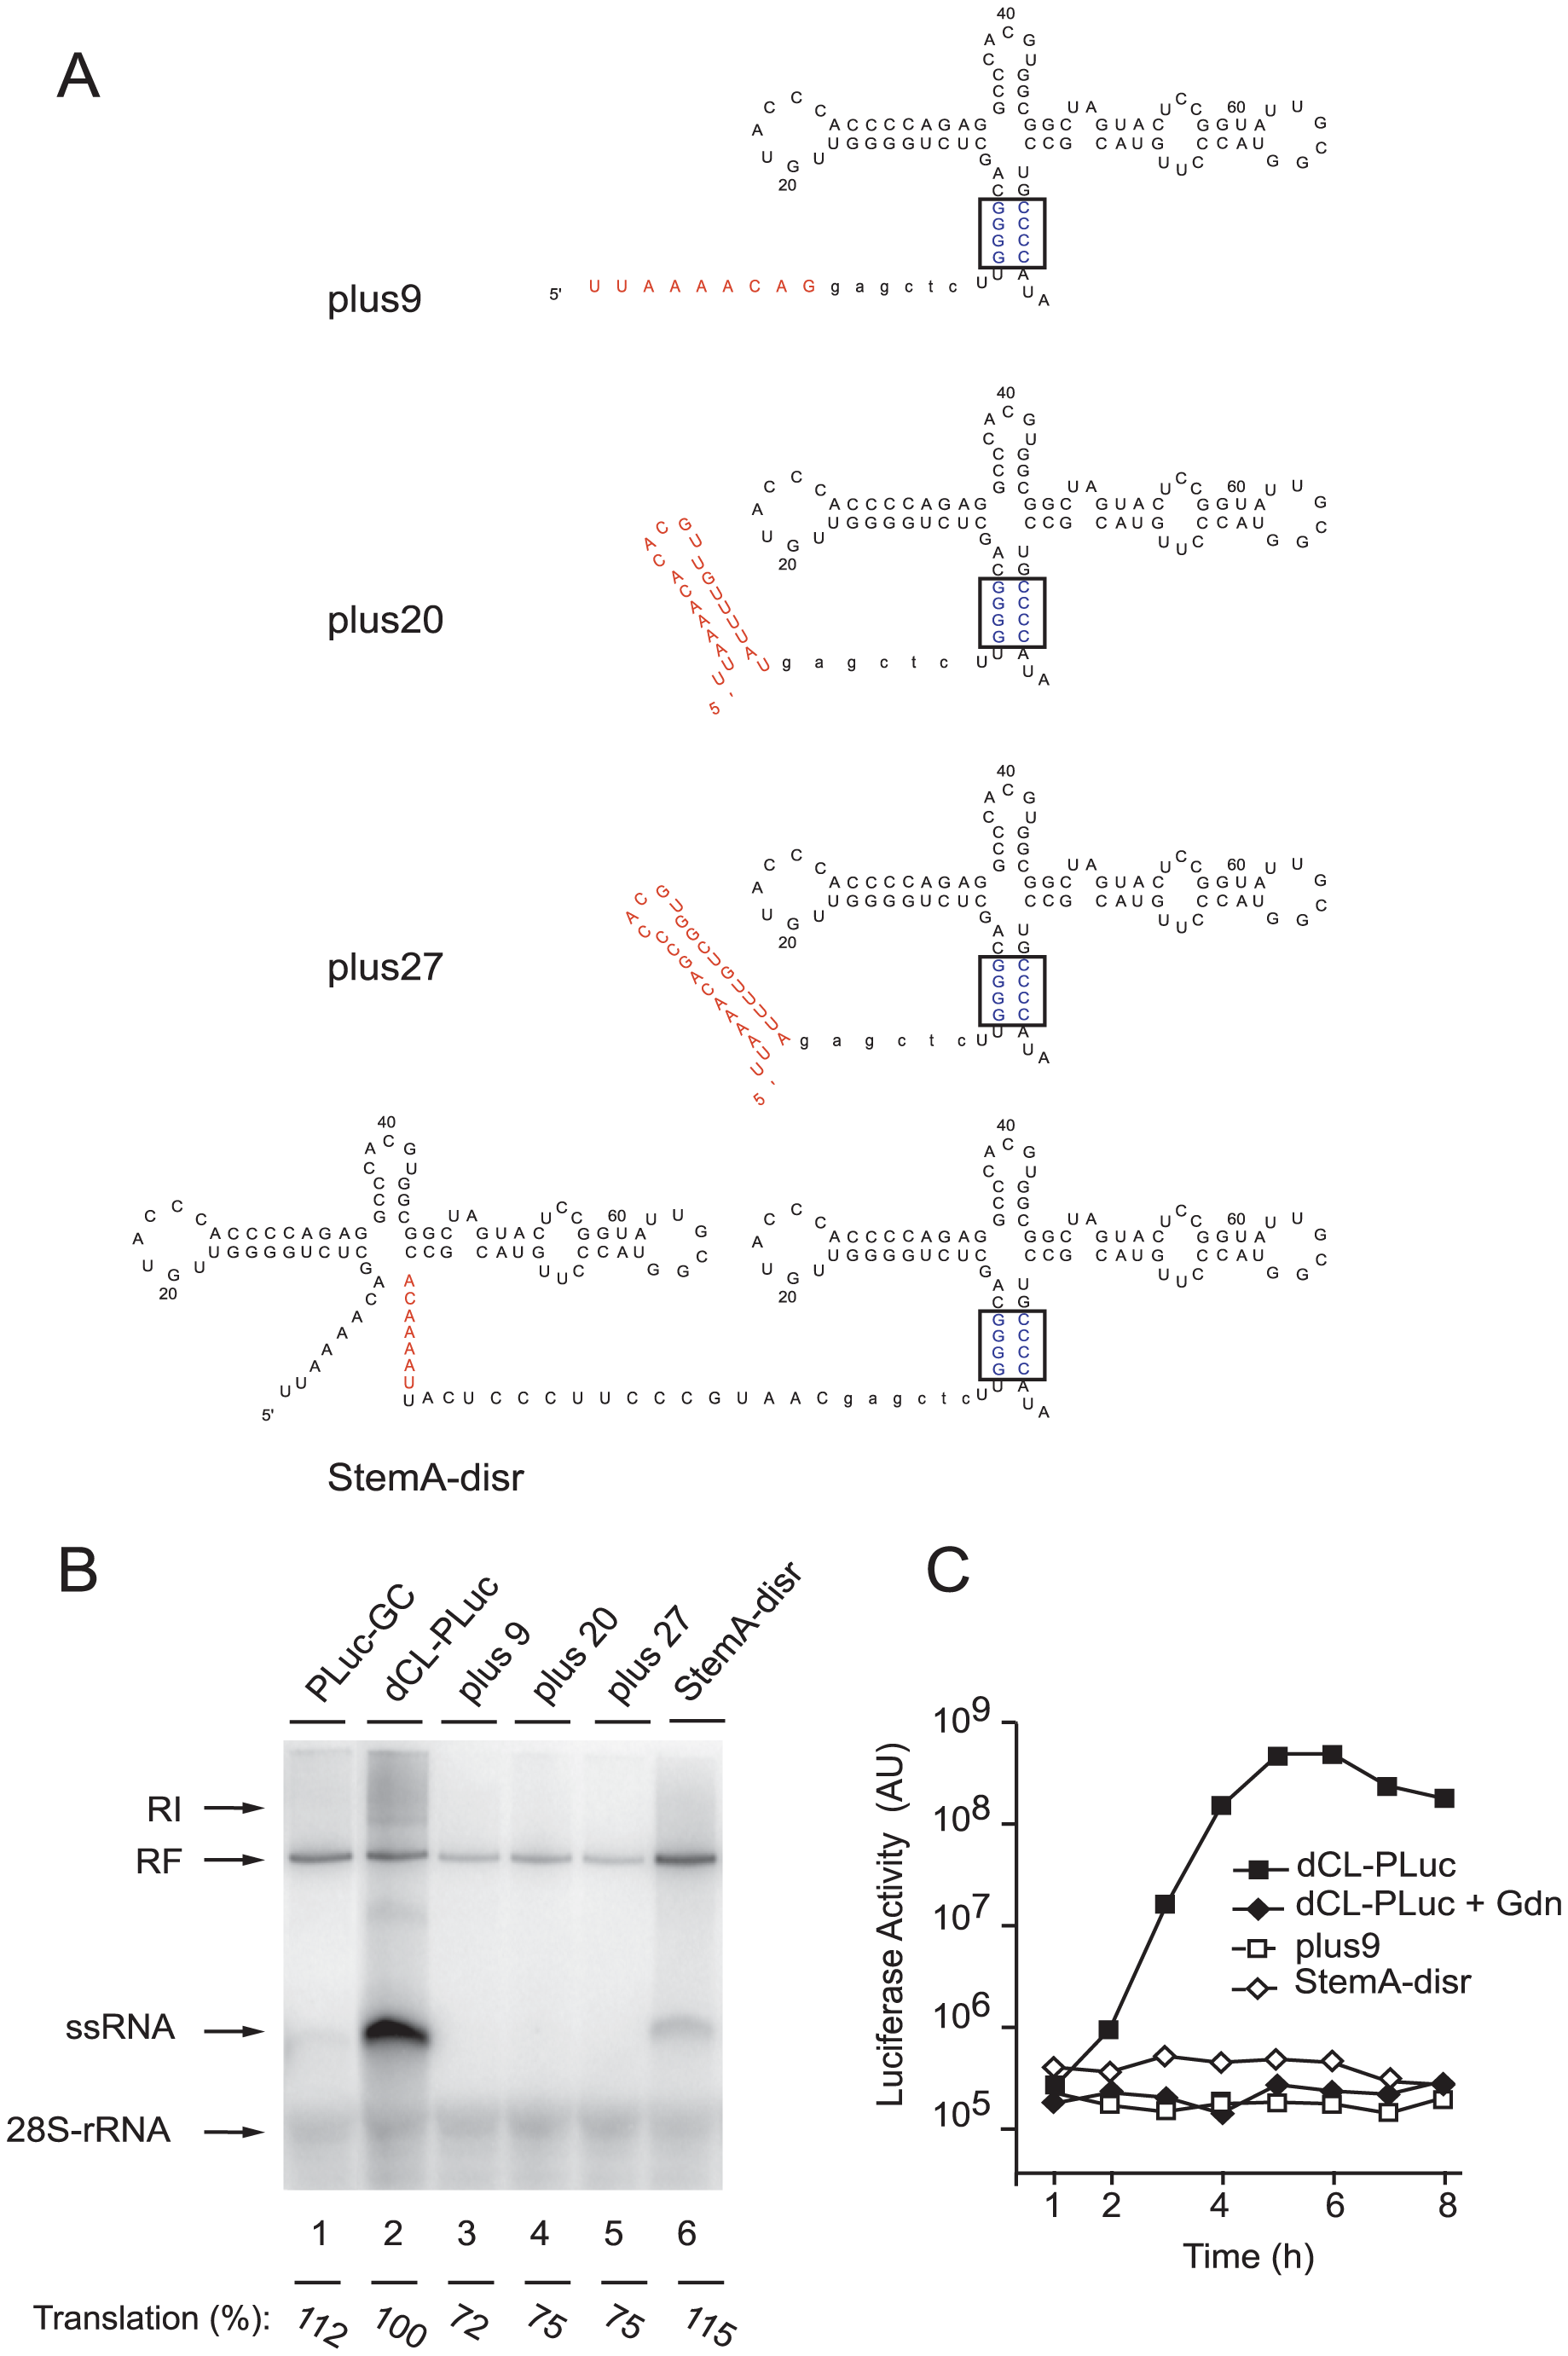 Efficient replication requires a full-length cloverleaf structure at the most 5′-end of the virus genome.